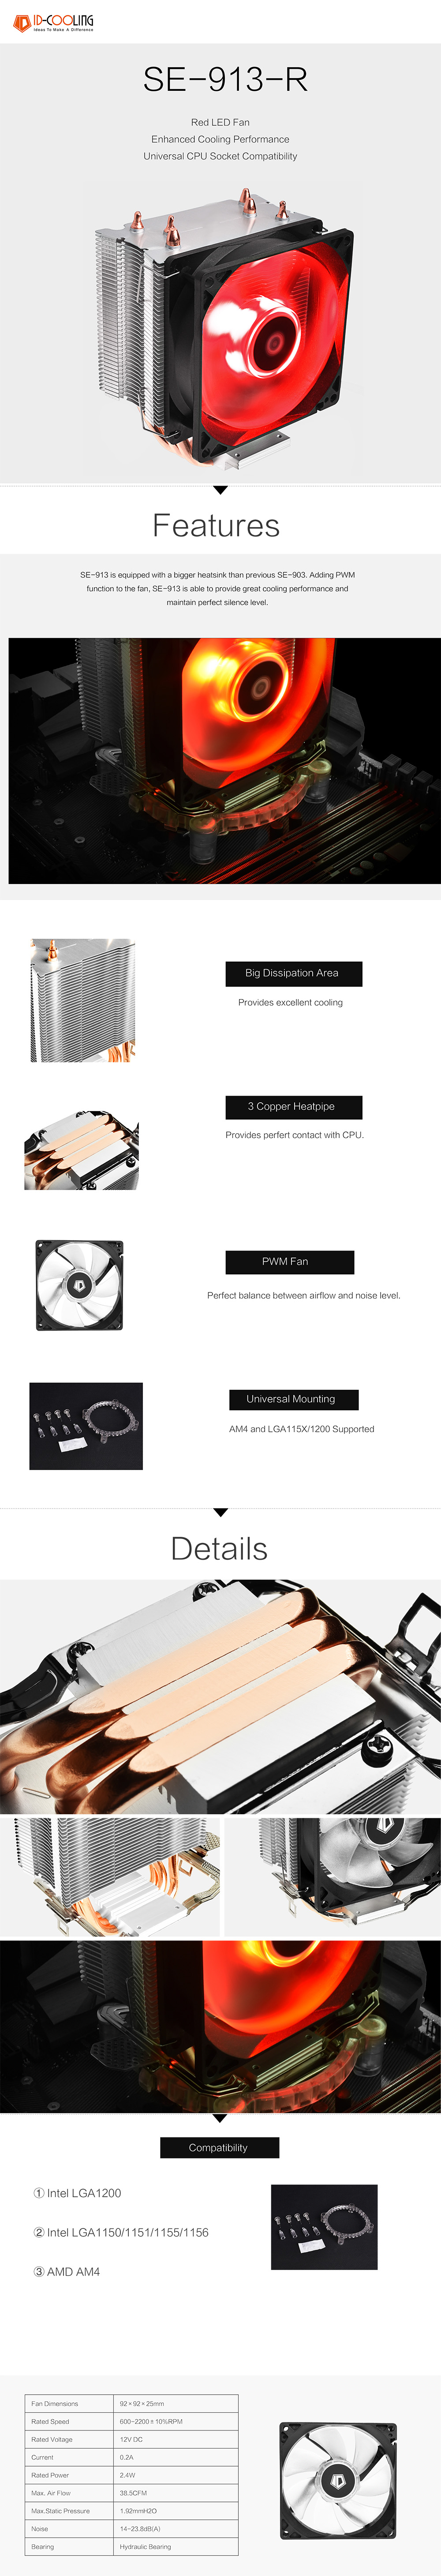 A large marketing image providing additional information about the product ID-COOLING Sweden Series SE-913-R PWM Red LED CPU Cooler - Additional alt info not provided